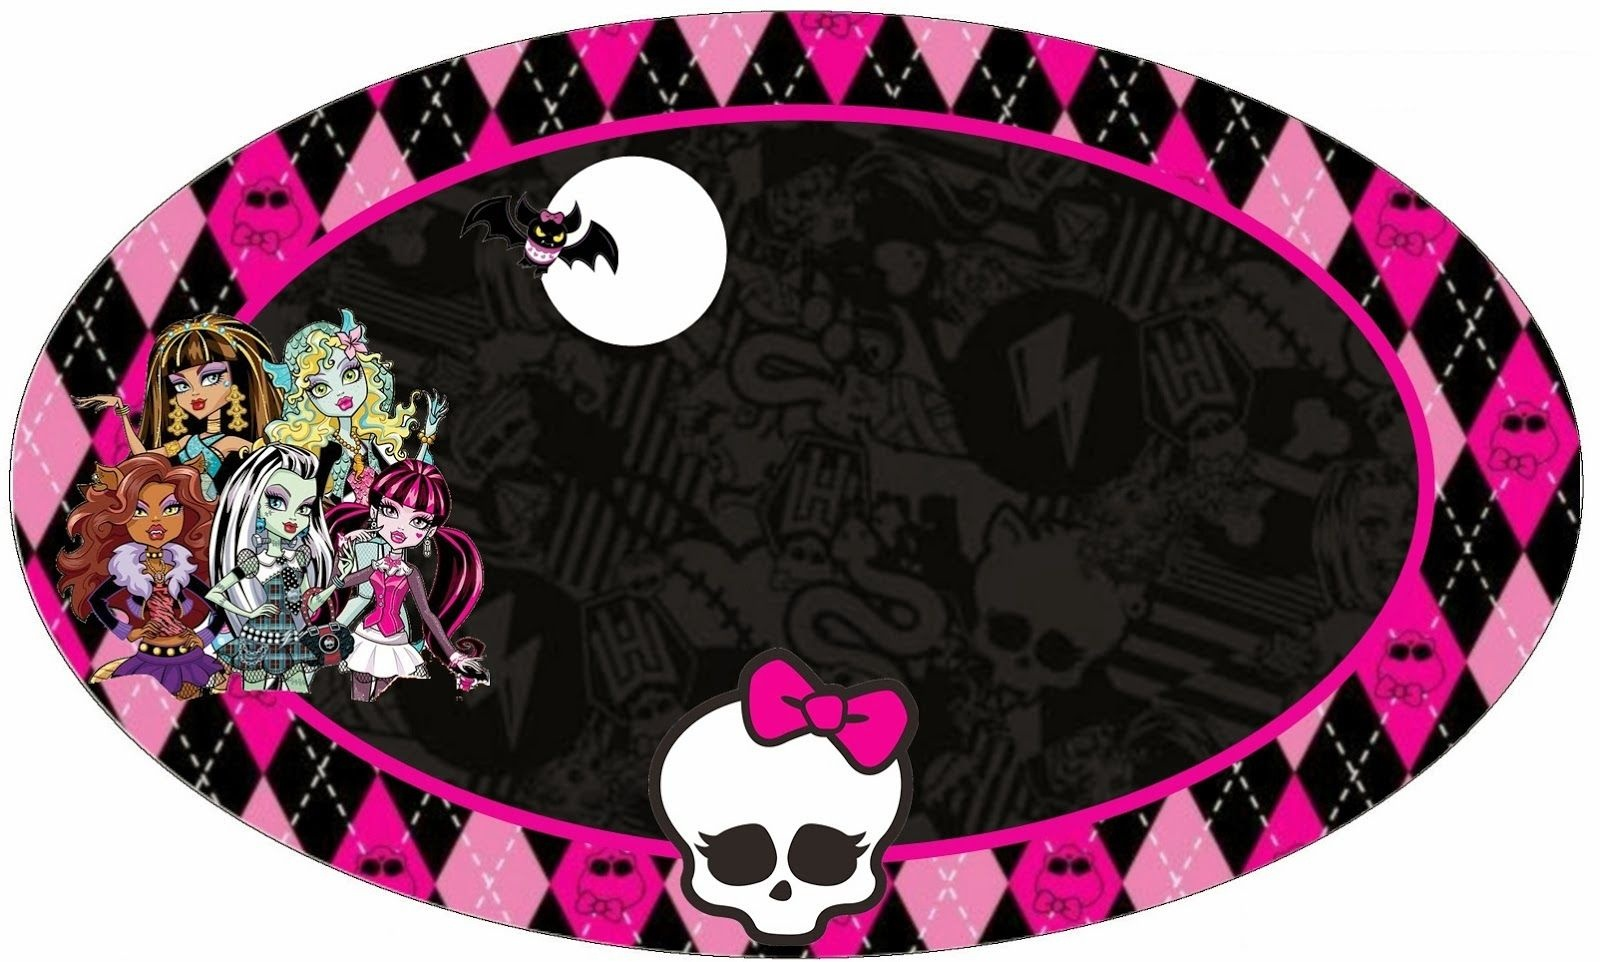 Monster High Printable Templates | Free Printable Toppers Stickers - Free Printable Monster High Stickers